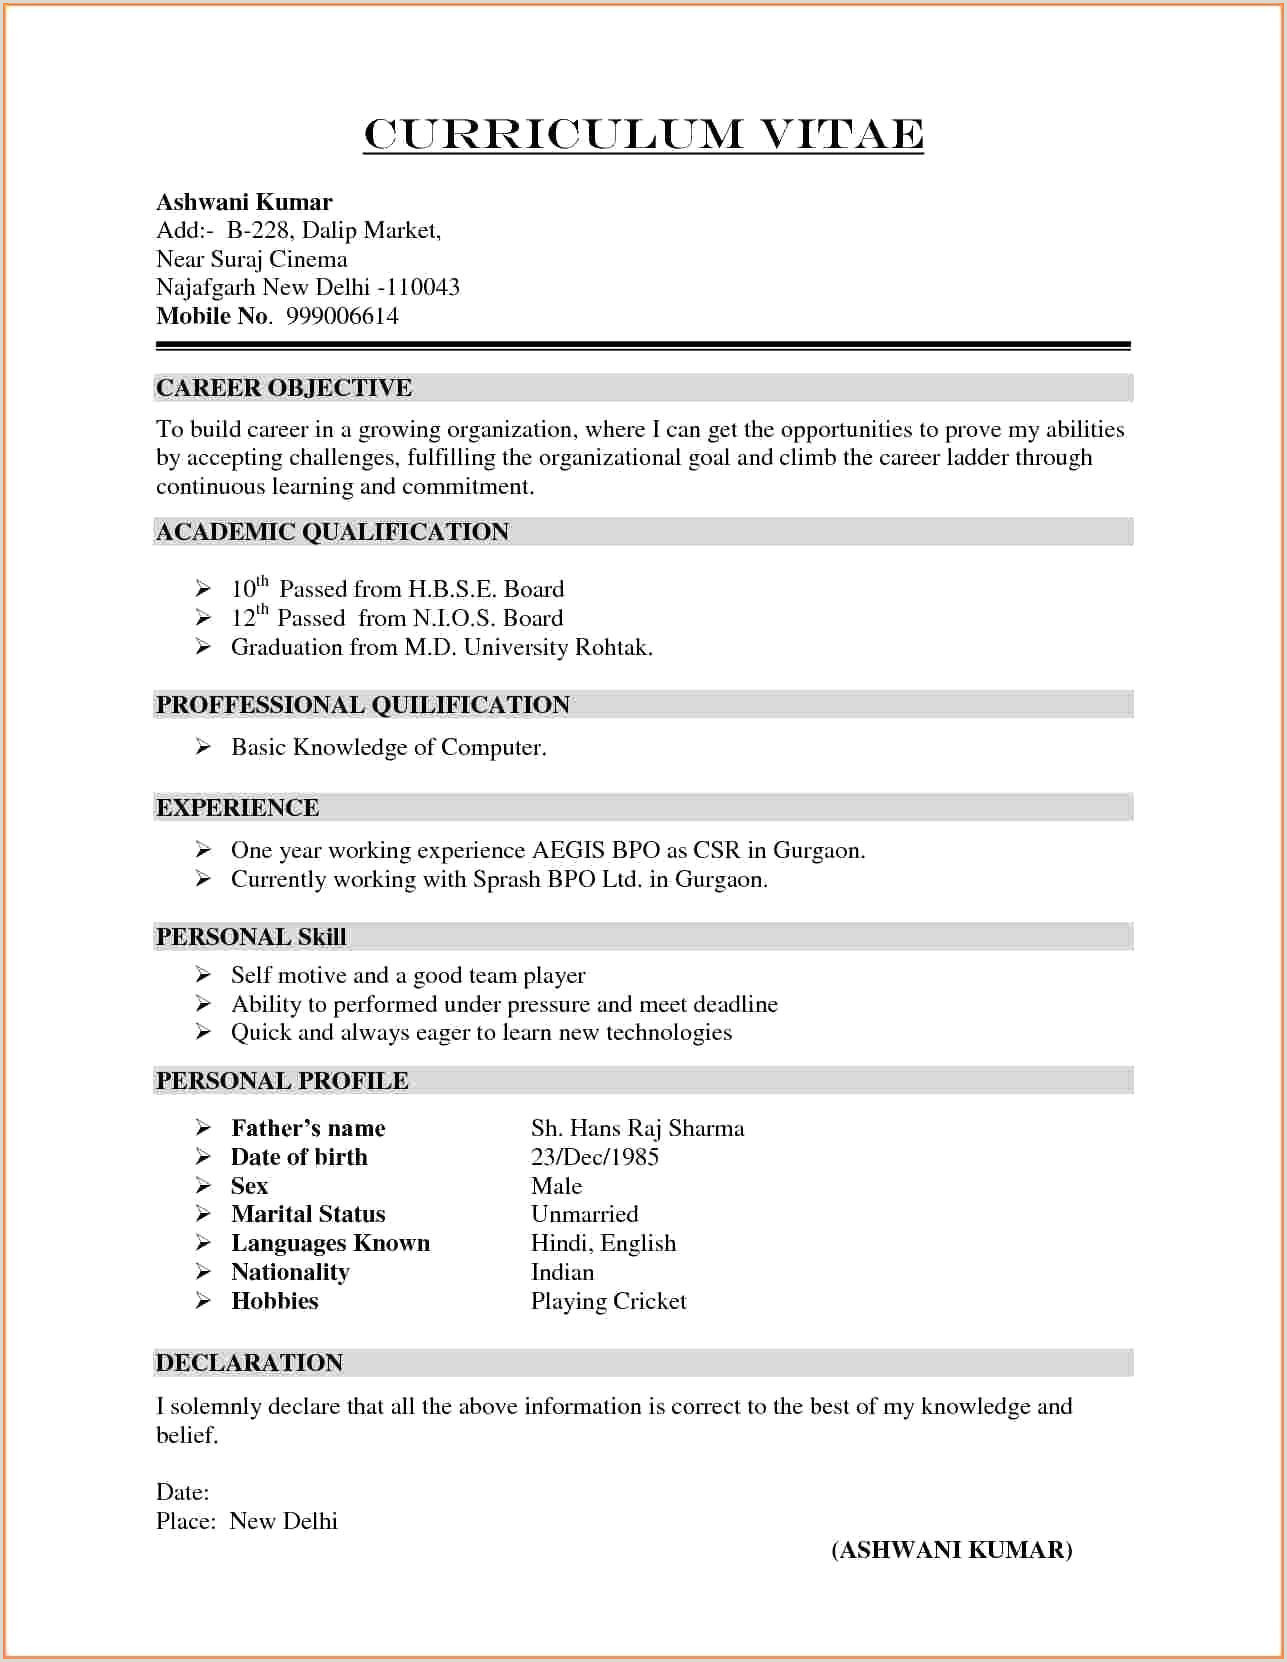 Cv format as A Fresher Curriculum Vitea Samples Latest Resume Anxjvo0r Education